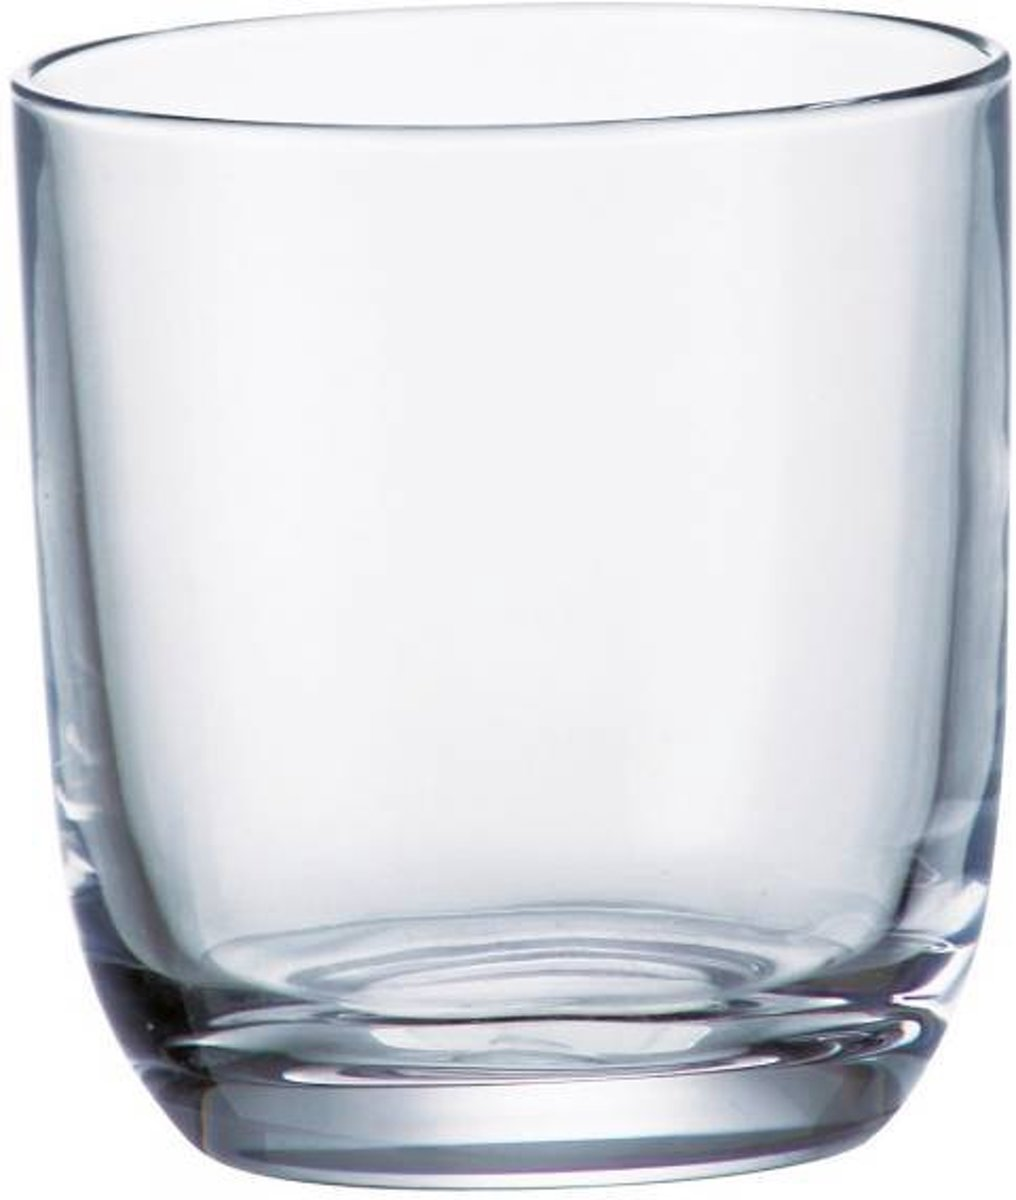 Orbit whisky glas 280ml kopen